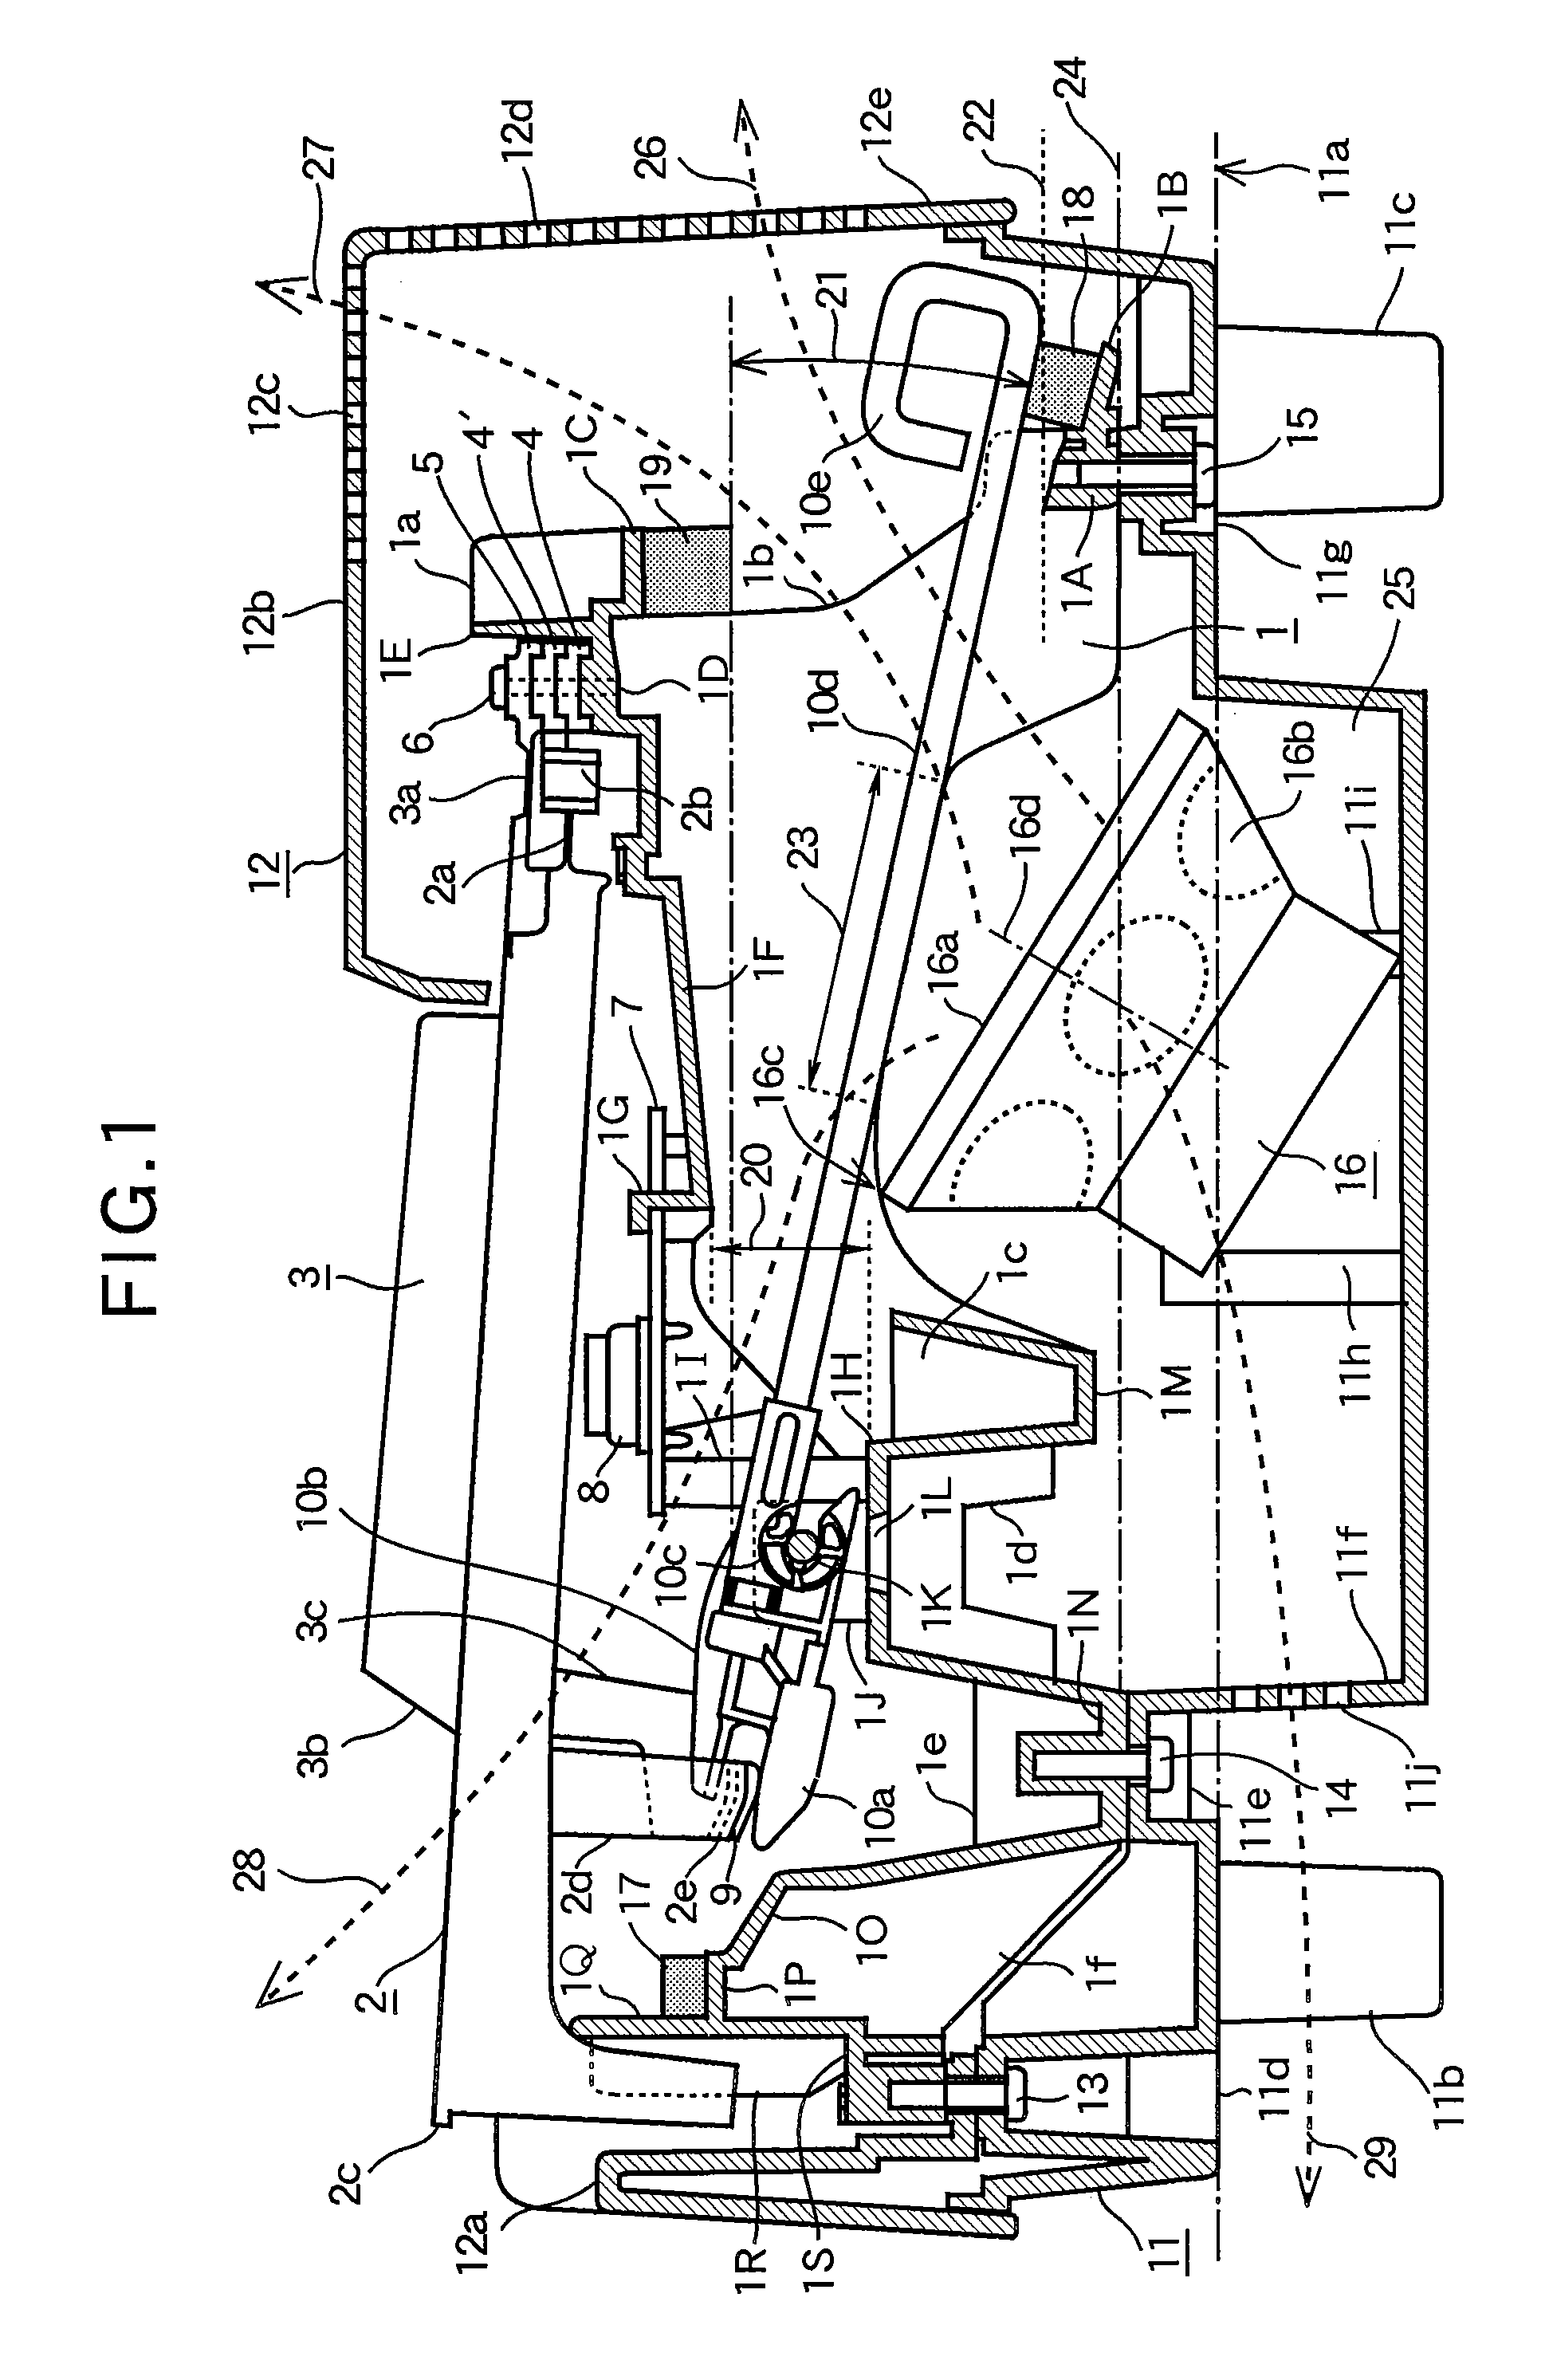 Patent US Electronic Keyboard Instrument Google Patents - Map us keyboard